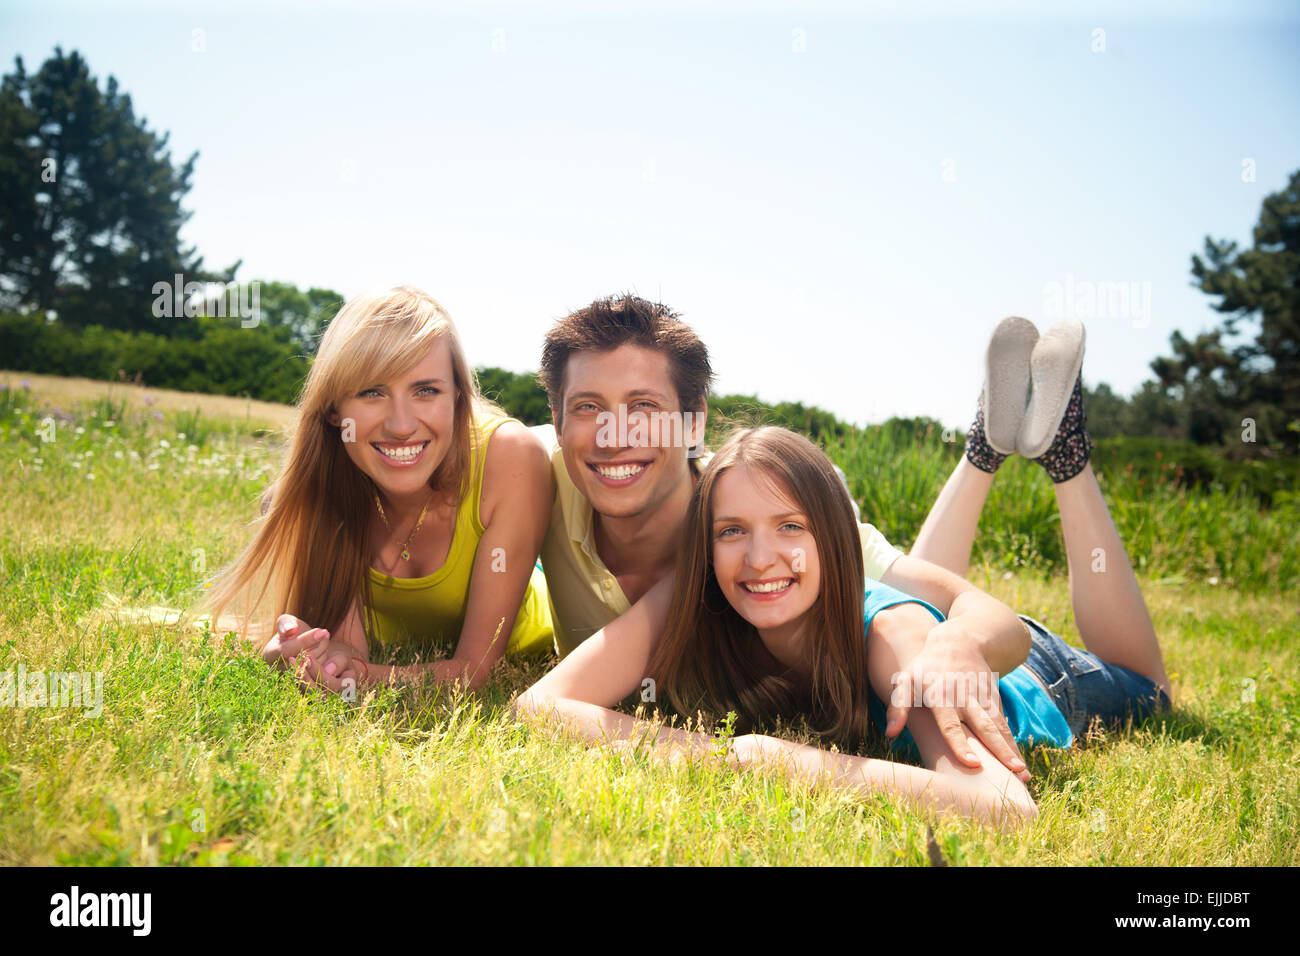 Les jeunes expriment positivity Photo Stock